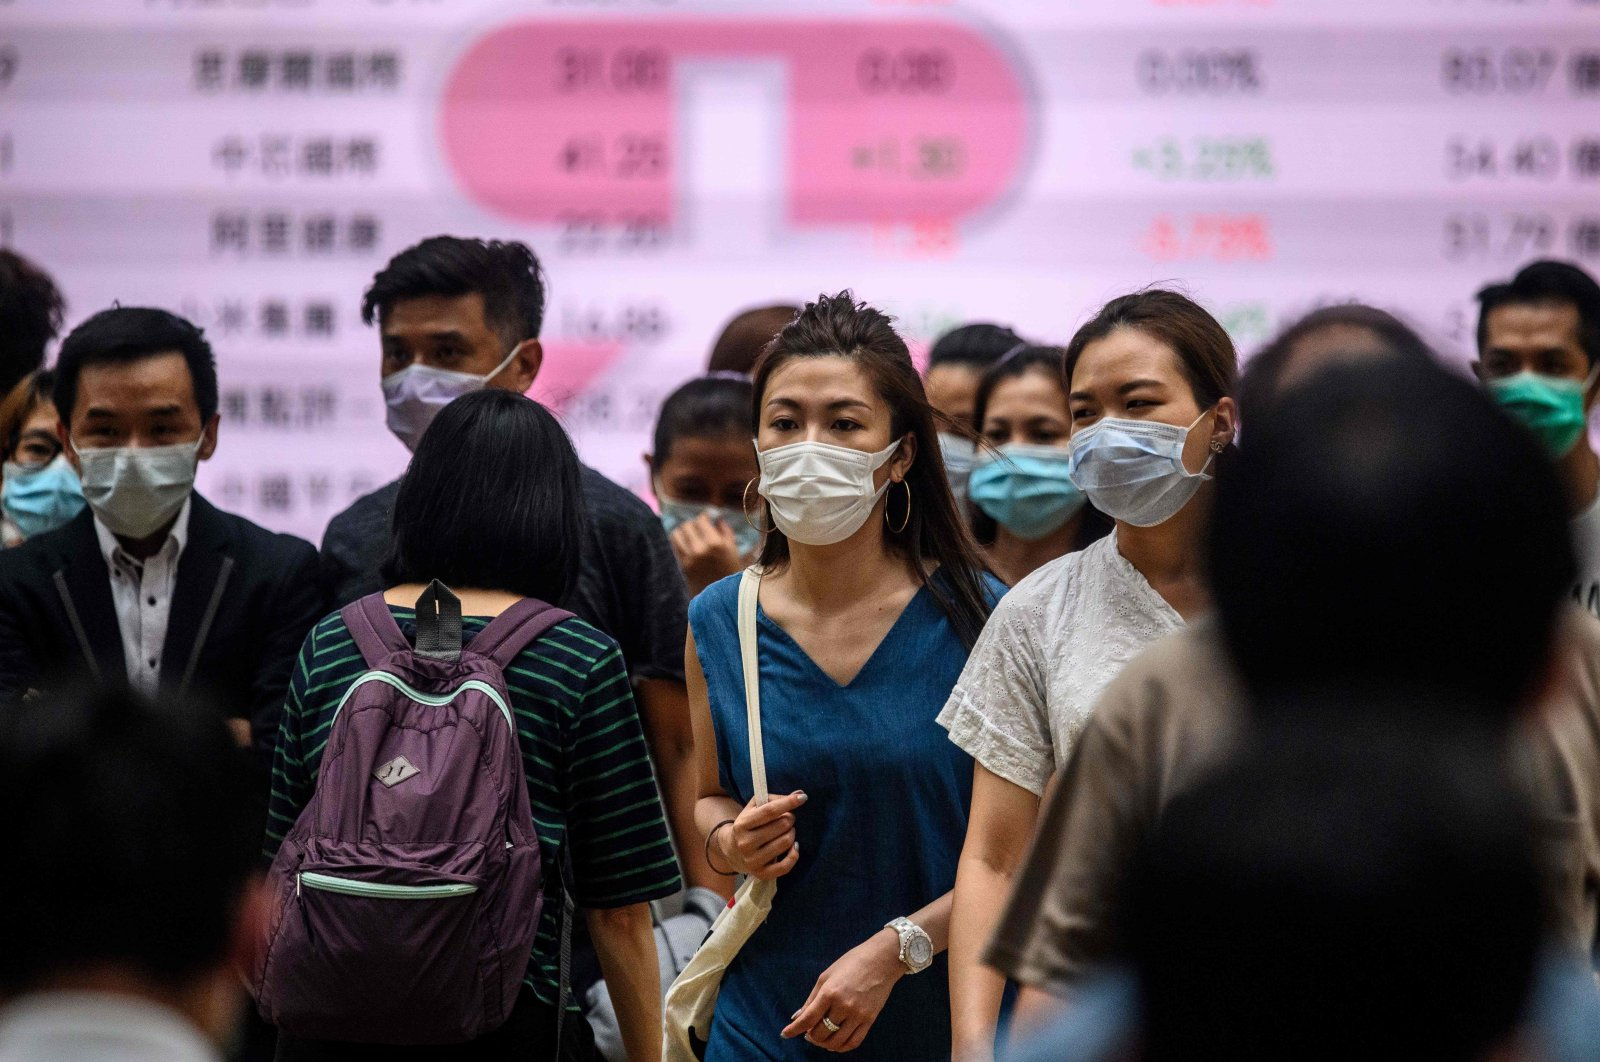 Pedestrians wear face masks as they cross a road in Hong Kong on July 10, 2020, as the city experiences new local outbreaks of the COVID-19 coronavirus. (AFP Photo)